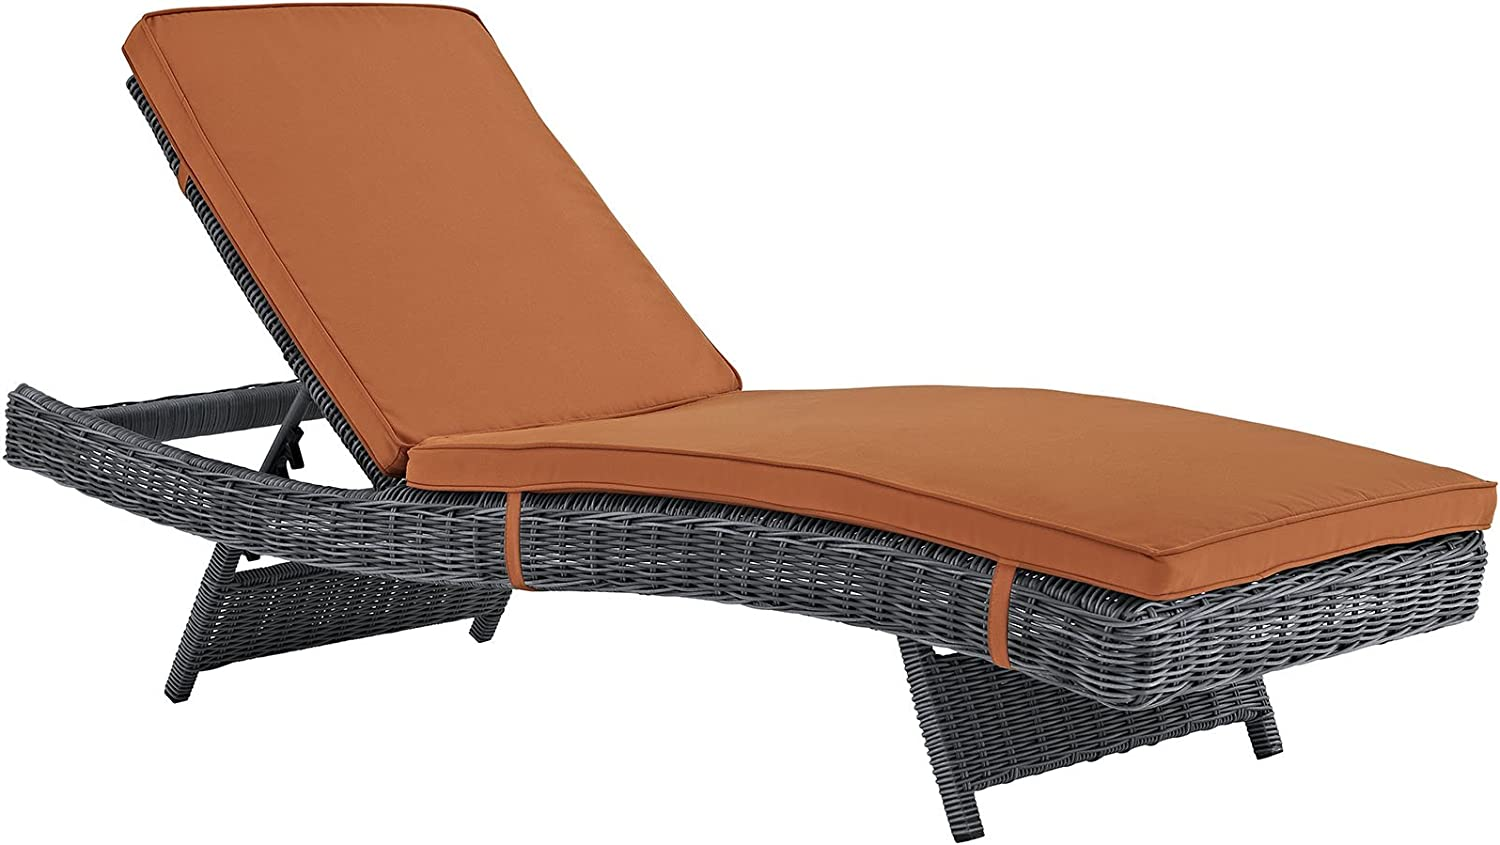 Modway Summon Wicker Rattan Outdoor Patio Sunbrella Fabric Chaise Lounge Chair in Canvas Tuscan: Kitchen & Dining